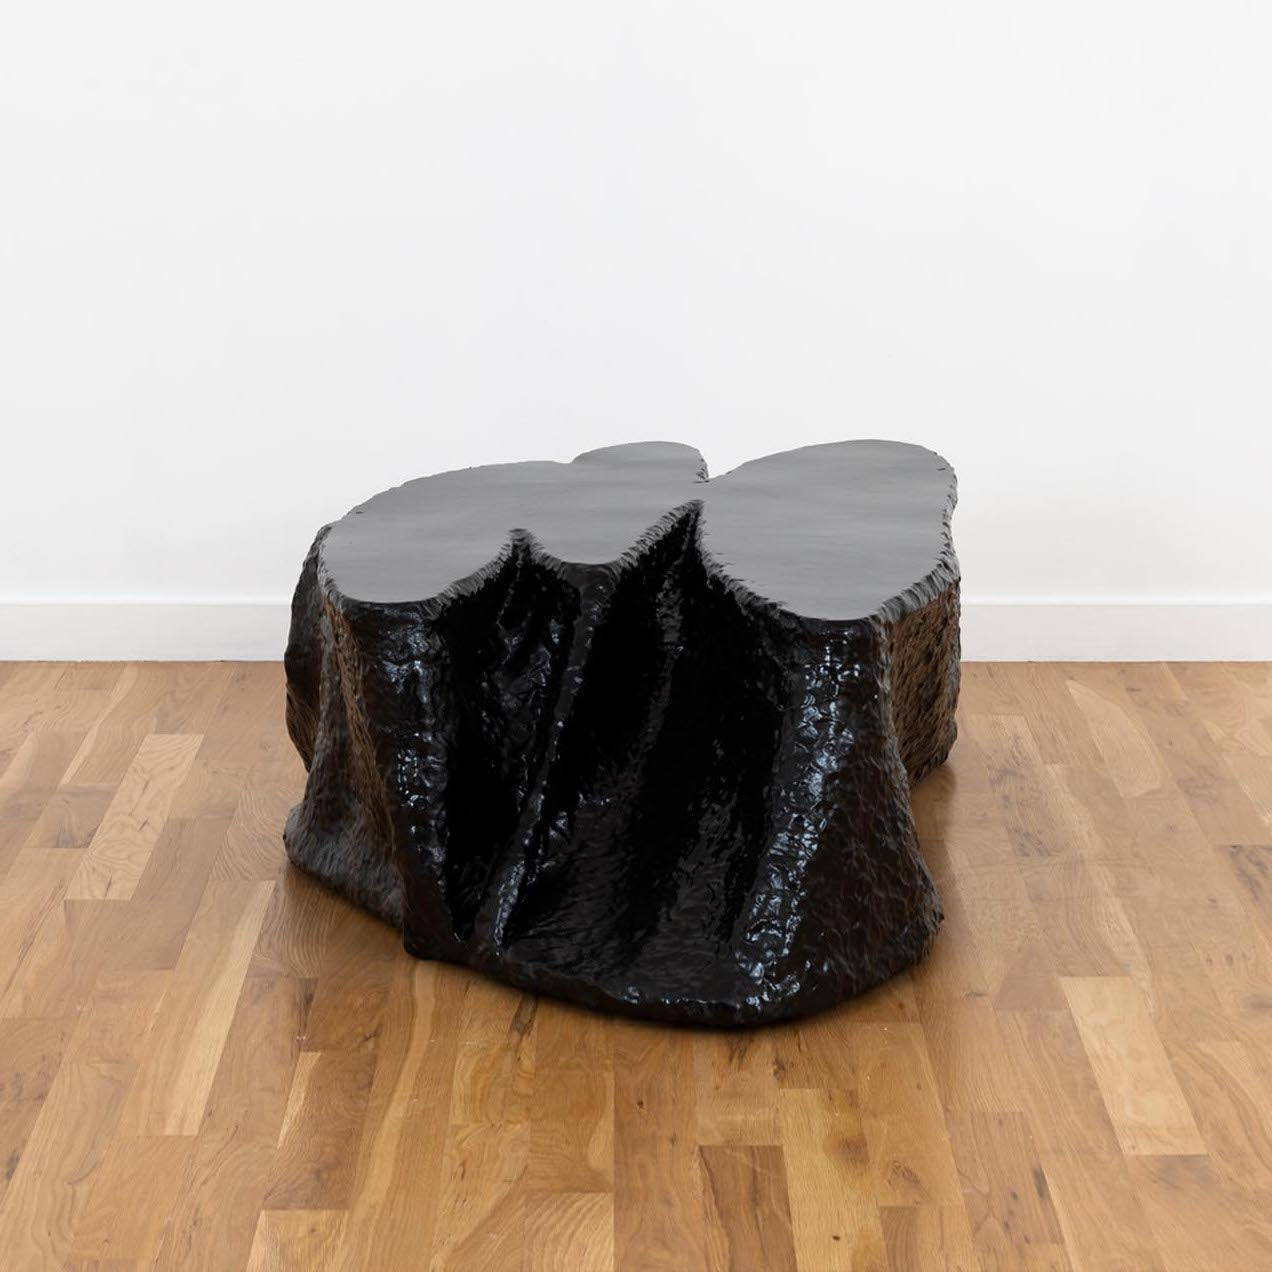 Felled Table by Ross Hansen, a one-of-a-kind made of fiberglass and truck bed liner. Photo © Volume Gallery